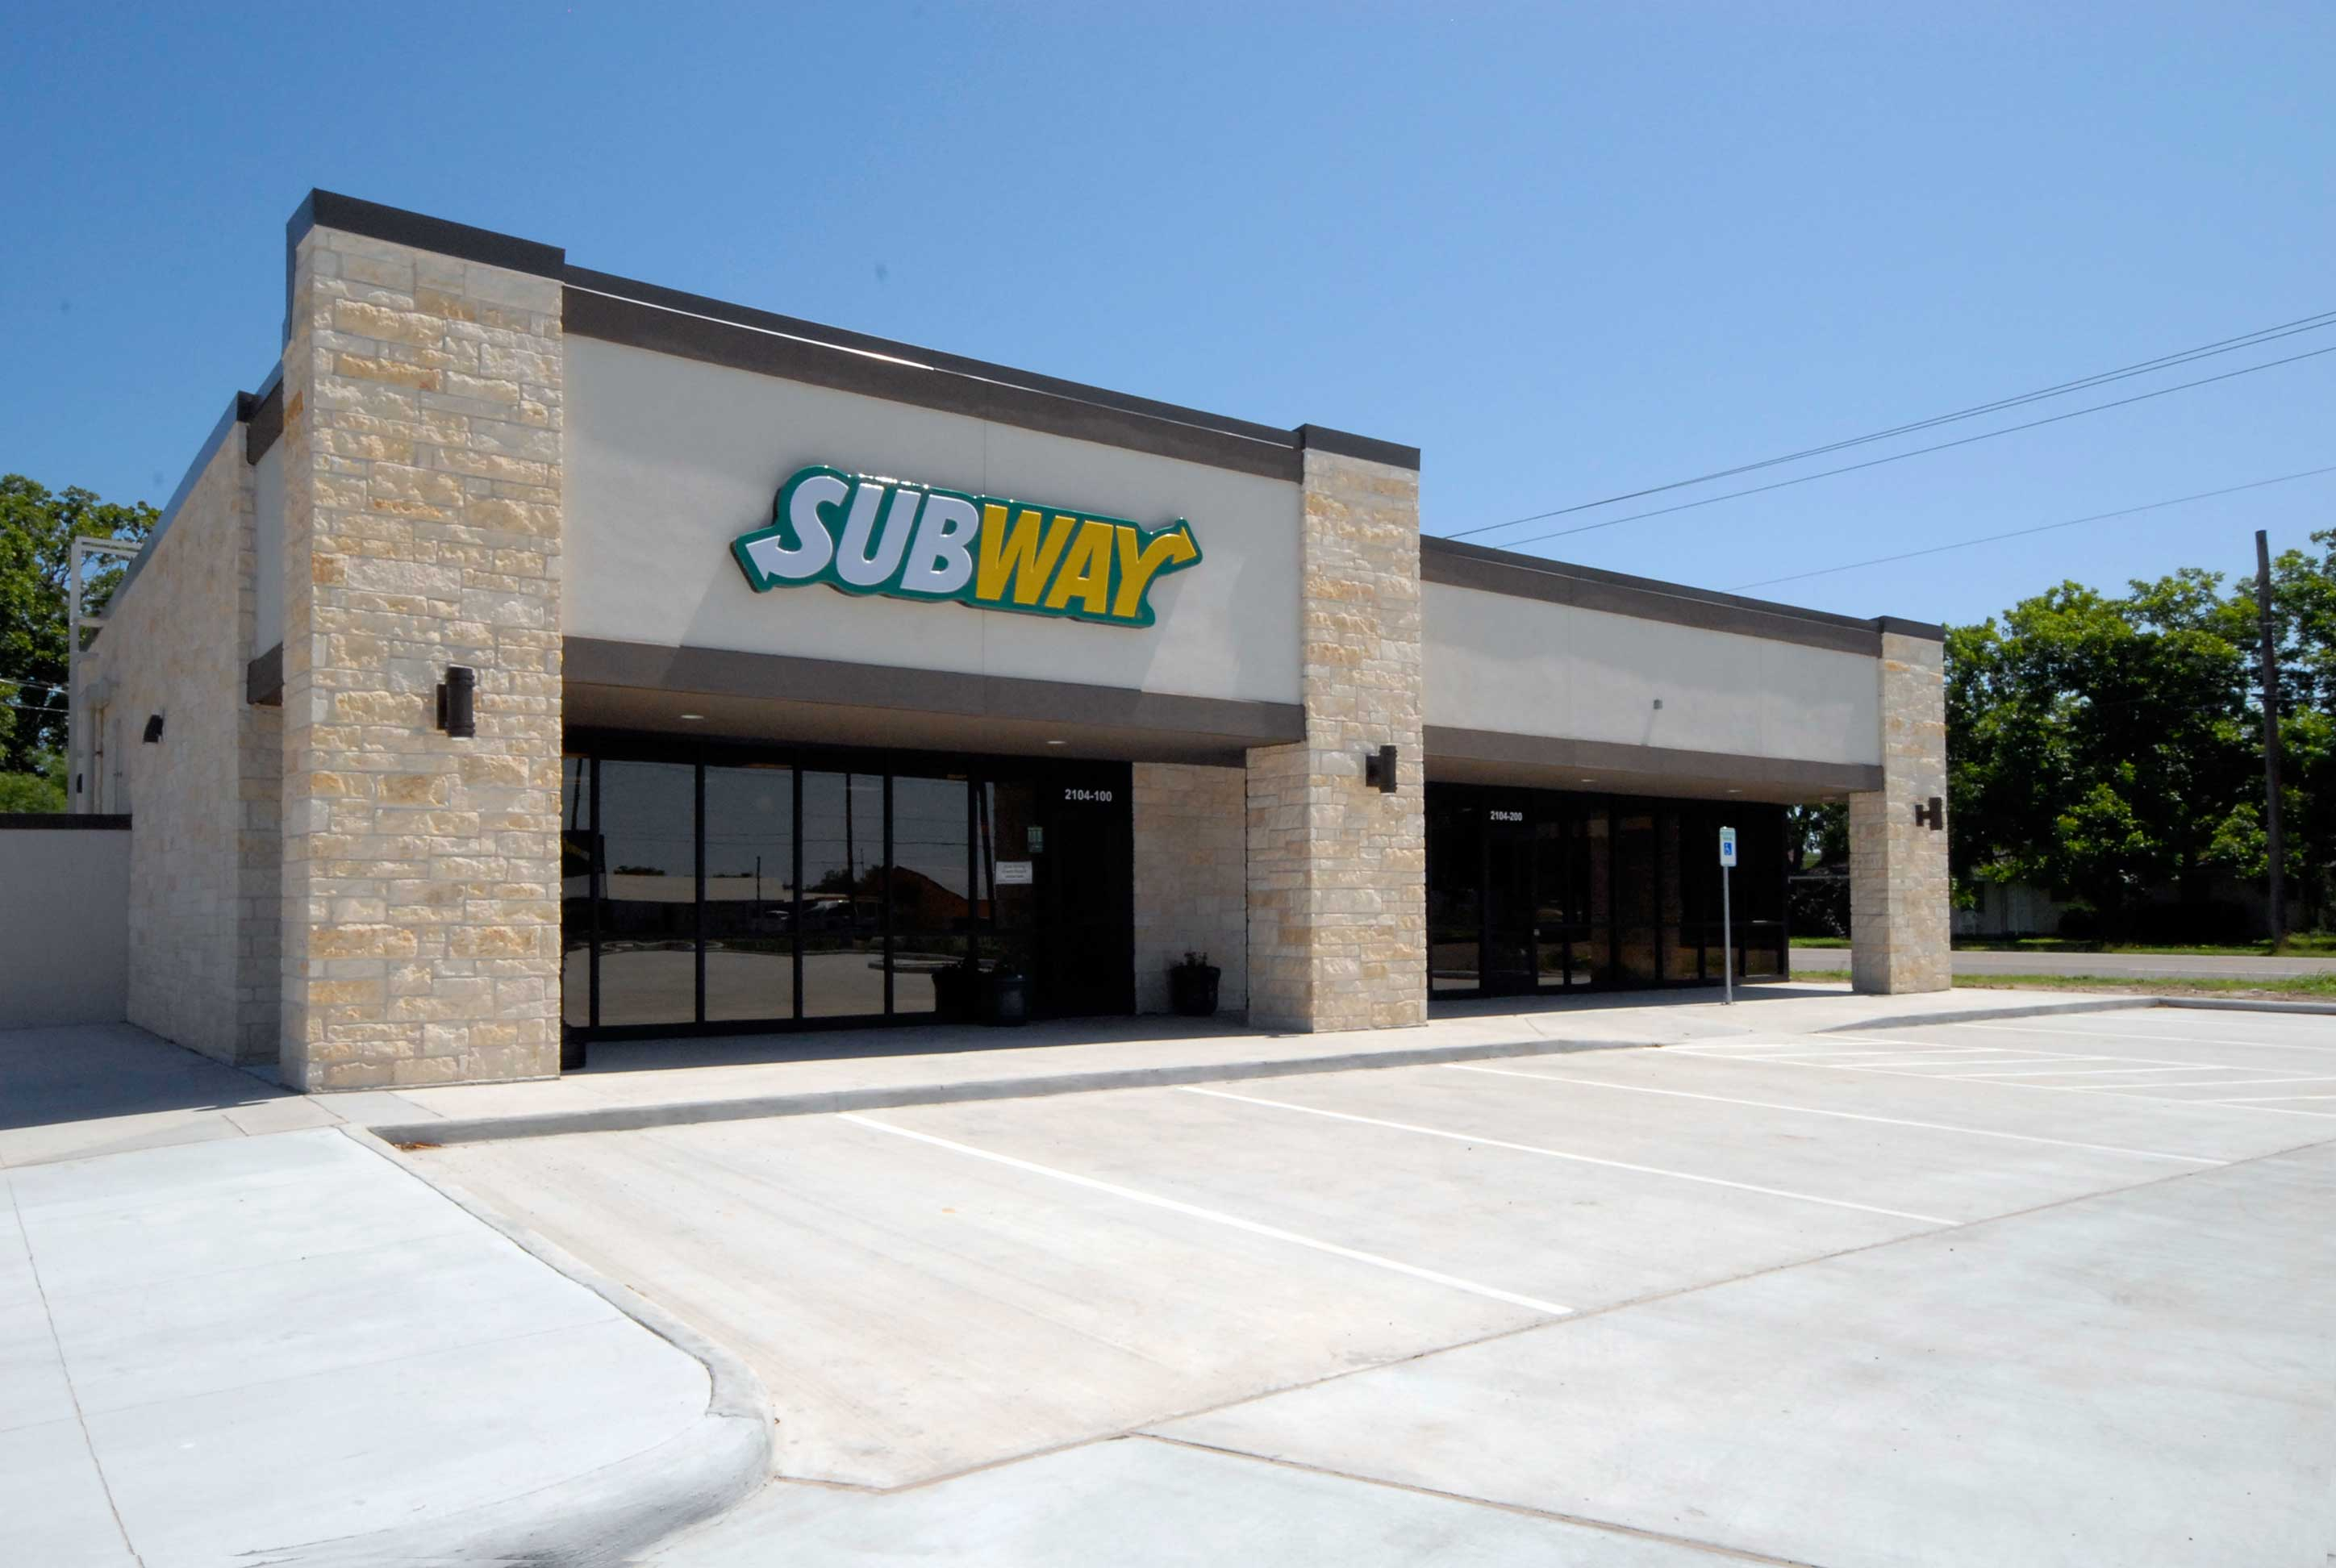 Subway / Retail Center